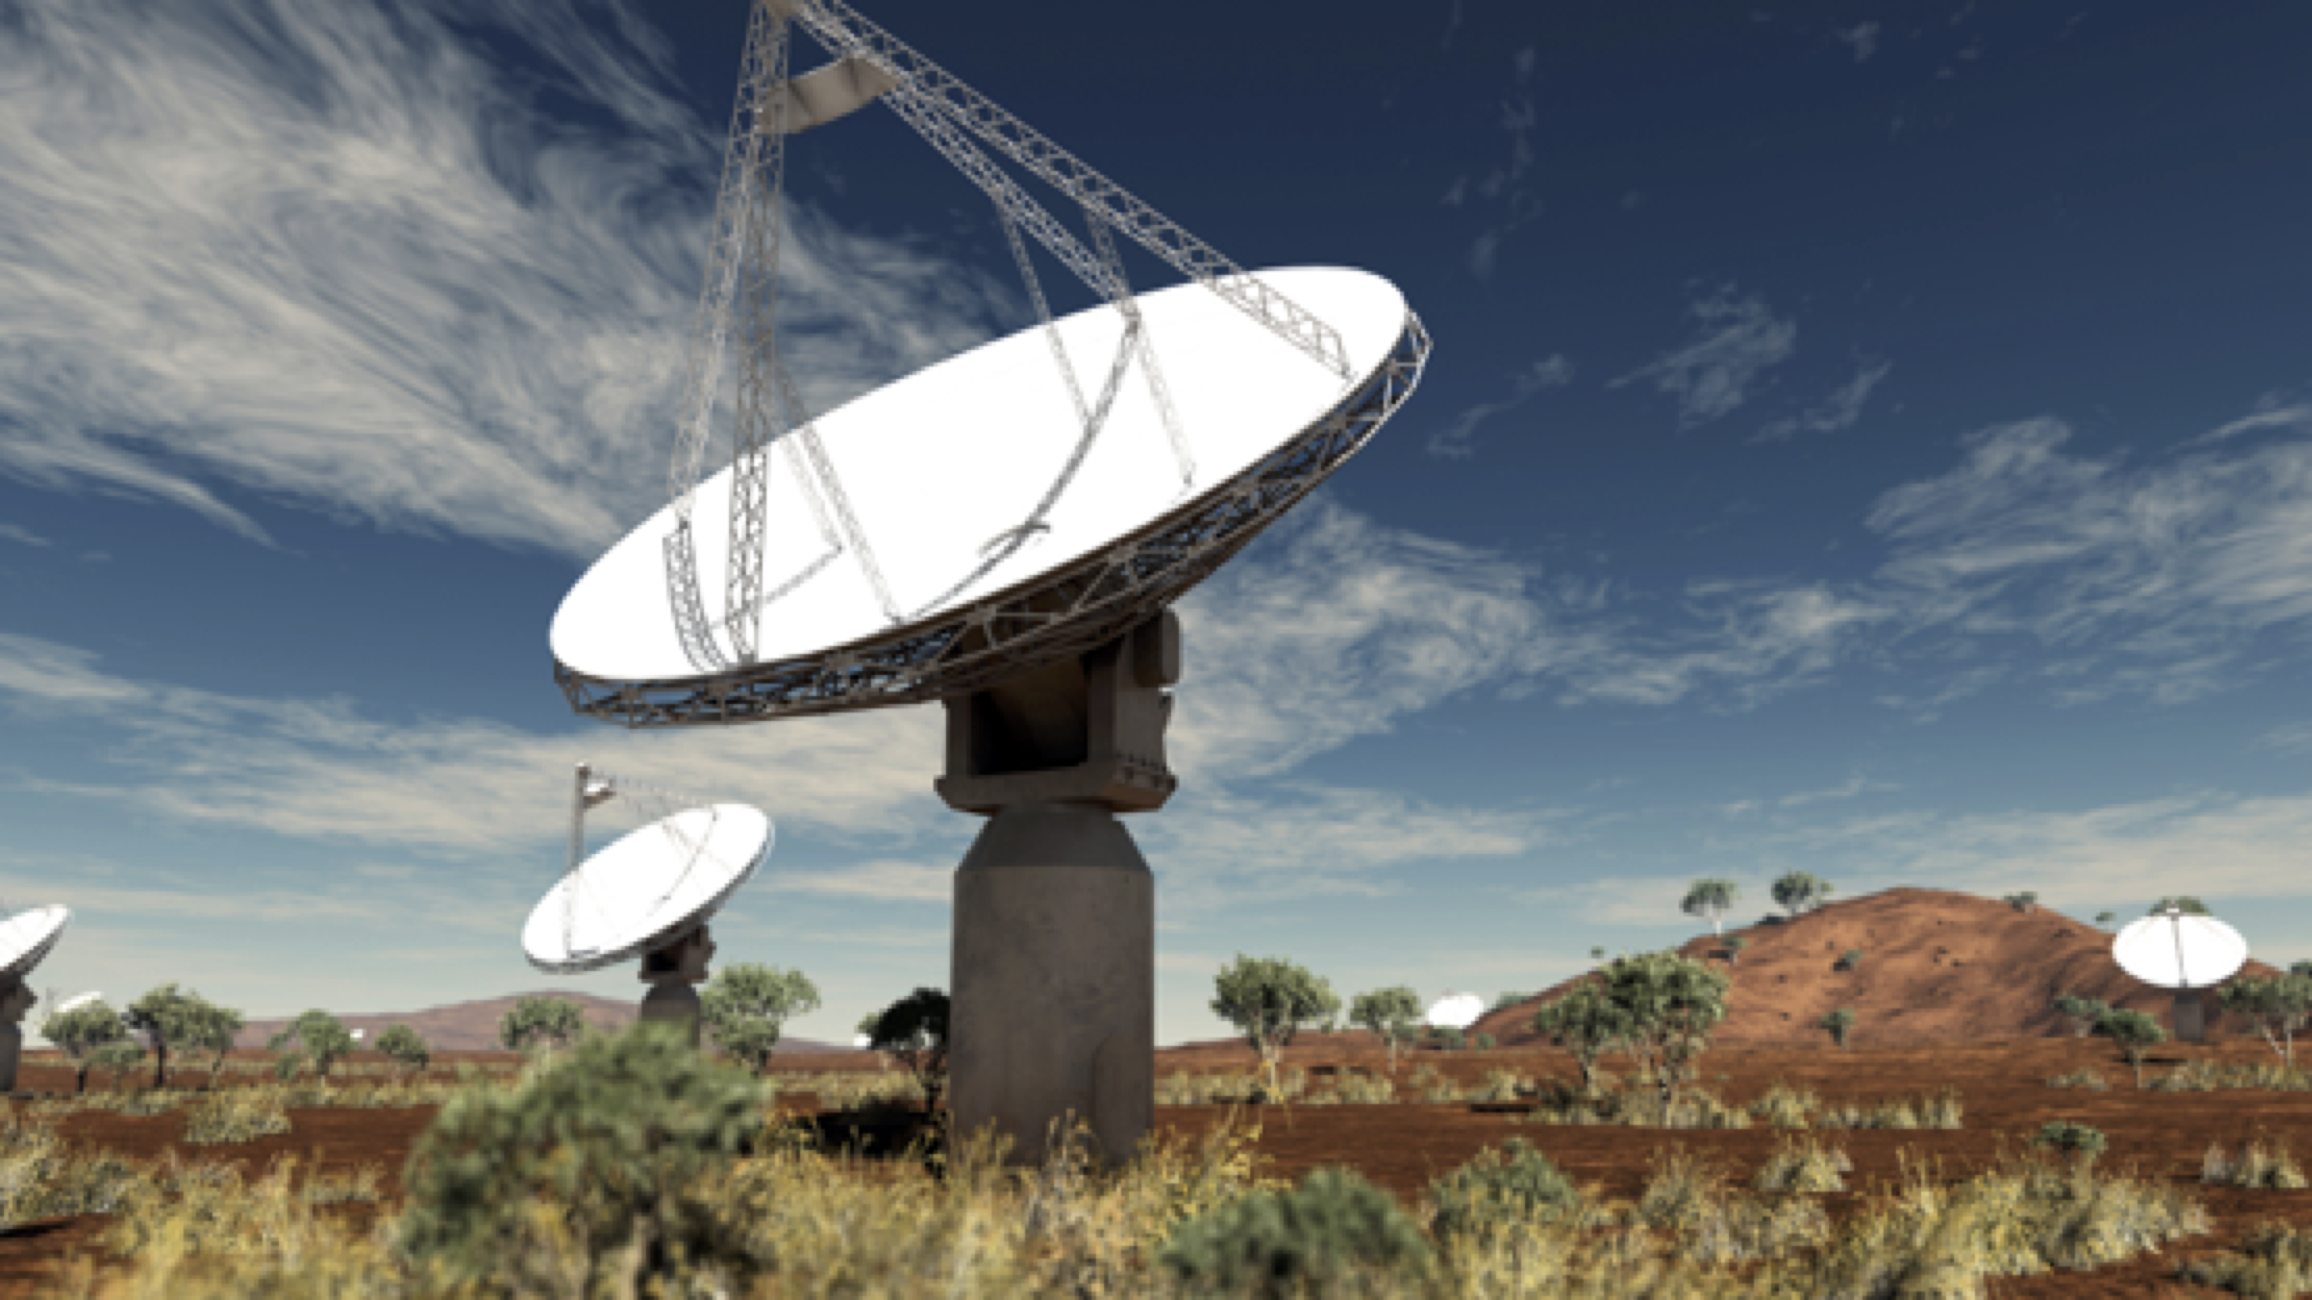 The Australian SKA pathfinder (ASKAP) in Western Australia is one of several world-class radio telescopes being used by ICRAR researchers